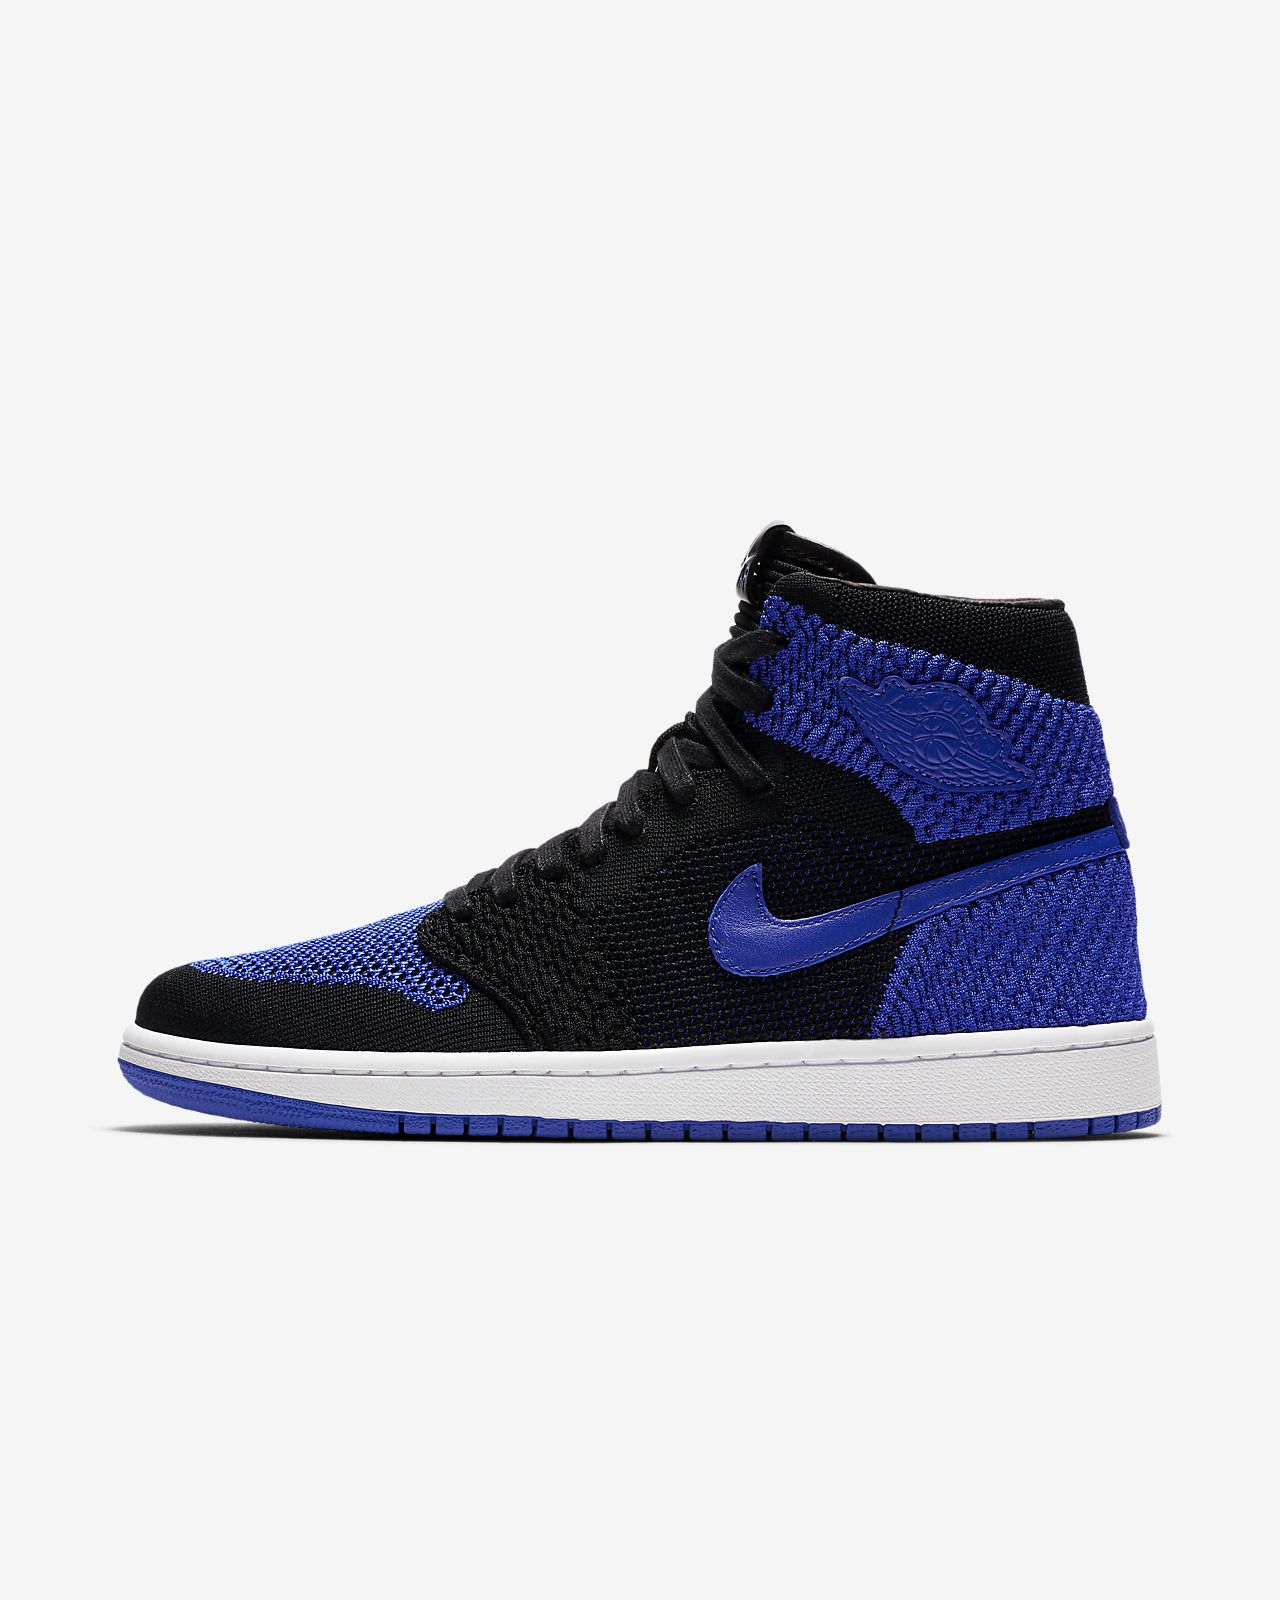 225882ab2ad9 Air Jordan 1 Retro High Flyknit Men s Shoe. Nike.com CA